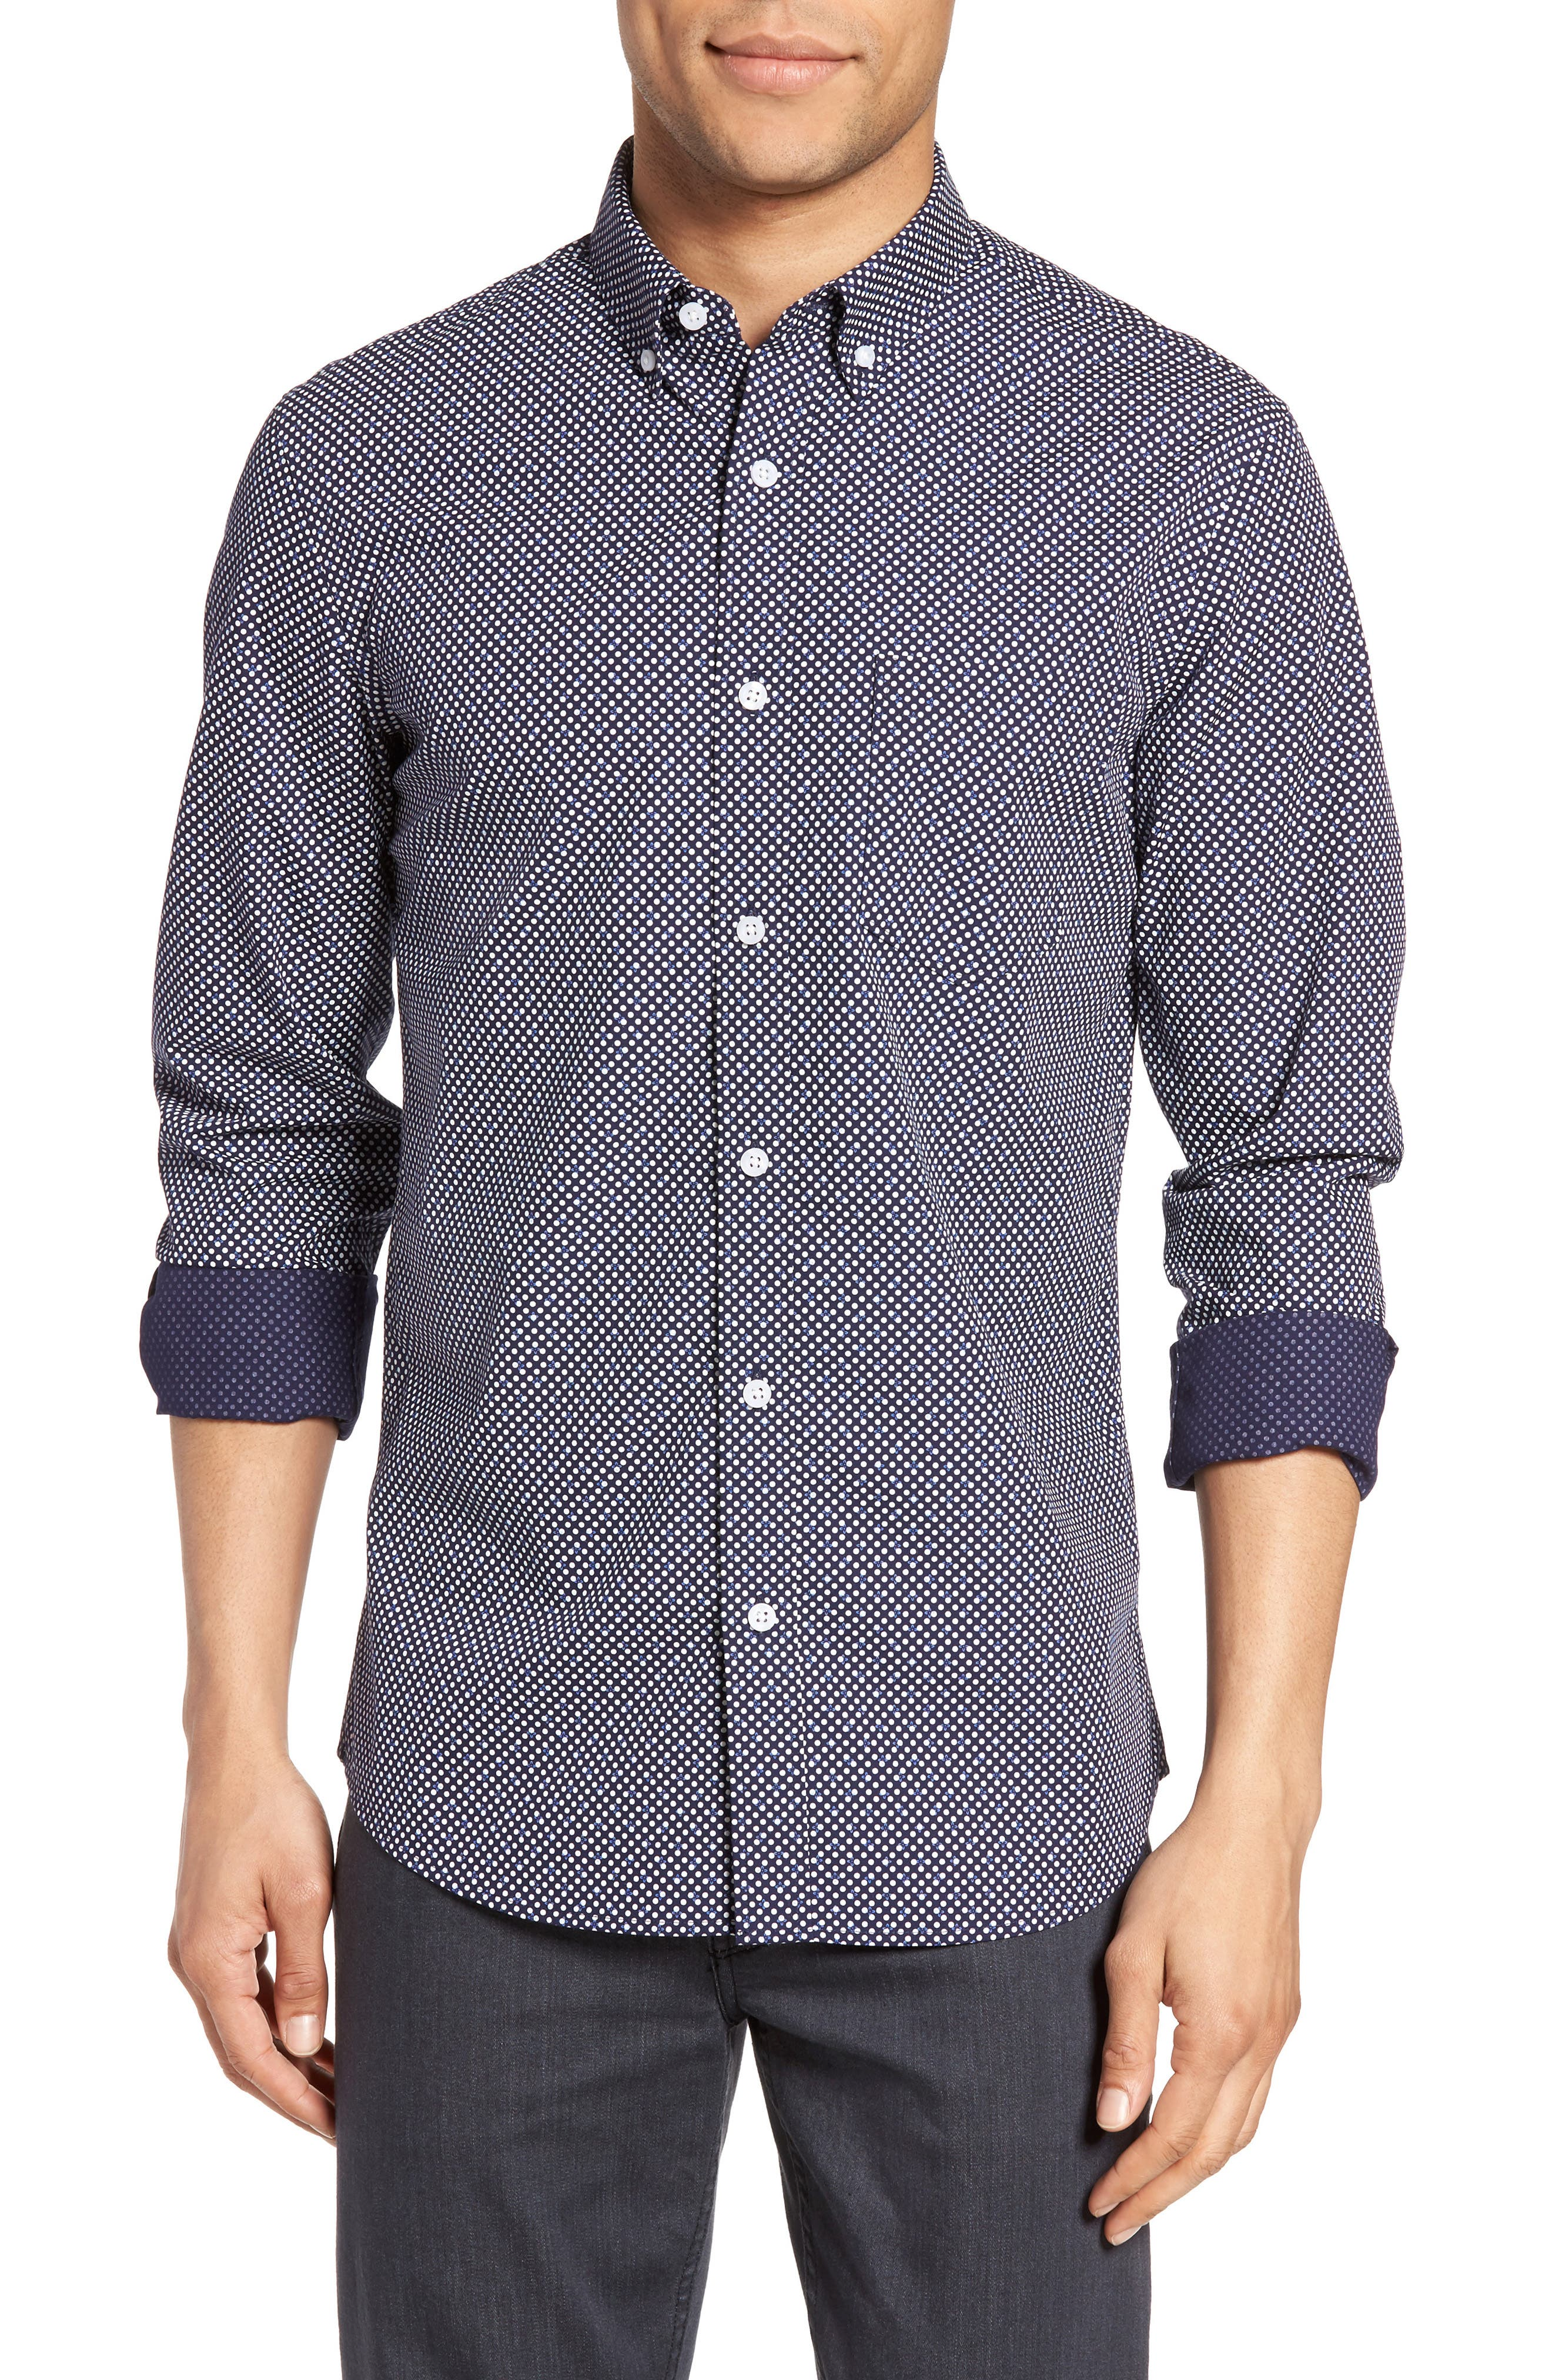 Nordstrom Men's Shop Trim Fit Non-Iron Dress Shirt (Regular & Tall)